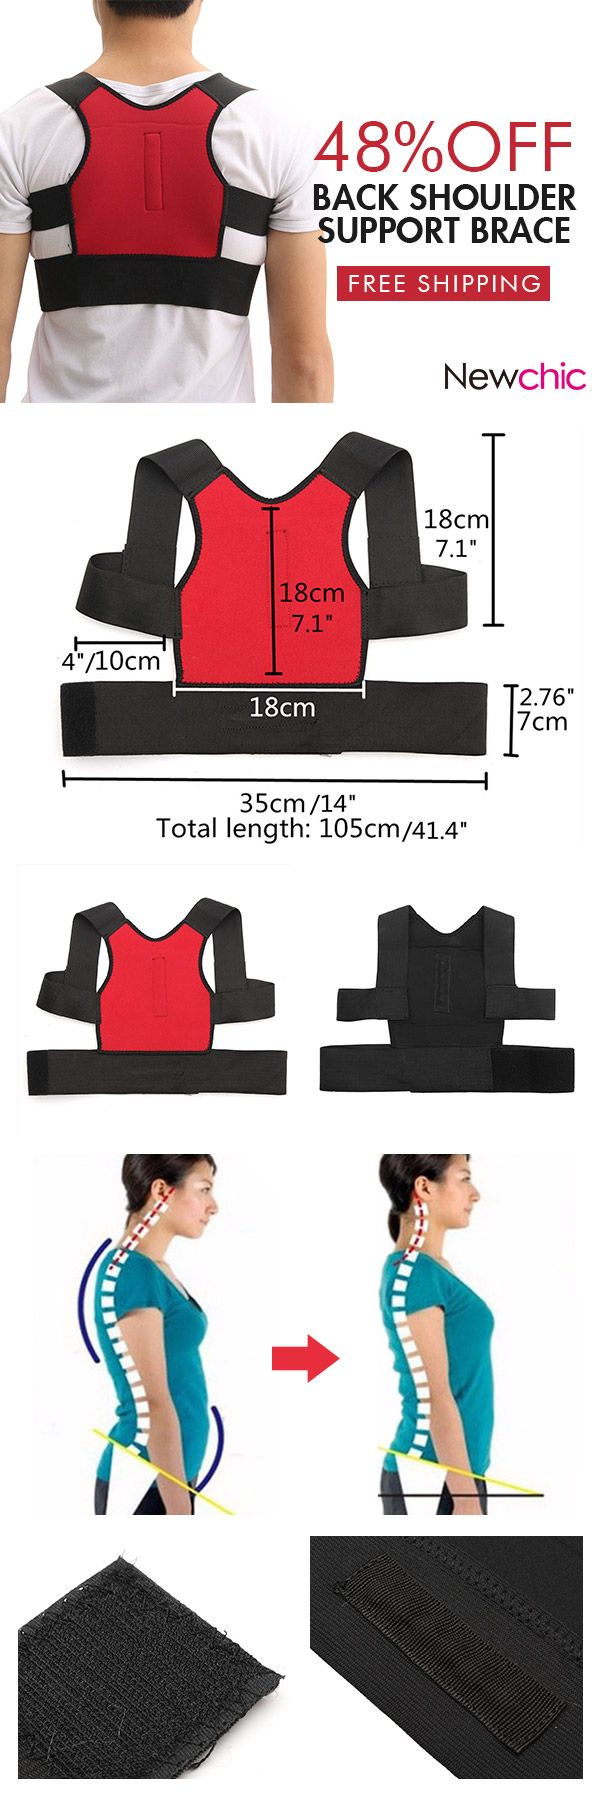 [Newchic Online Shopping] 48%OFF Posture Corrector Corset | Personal Care | Shapewear